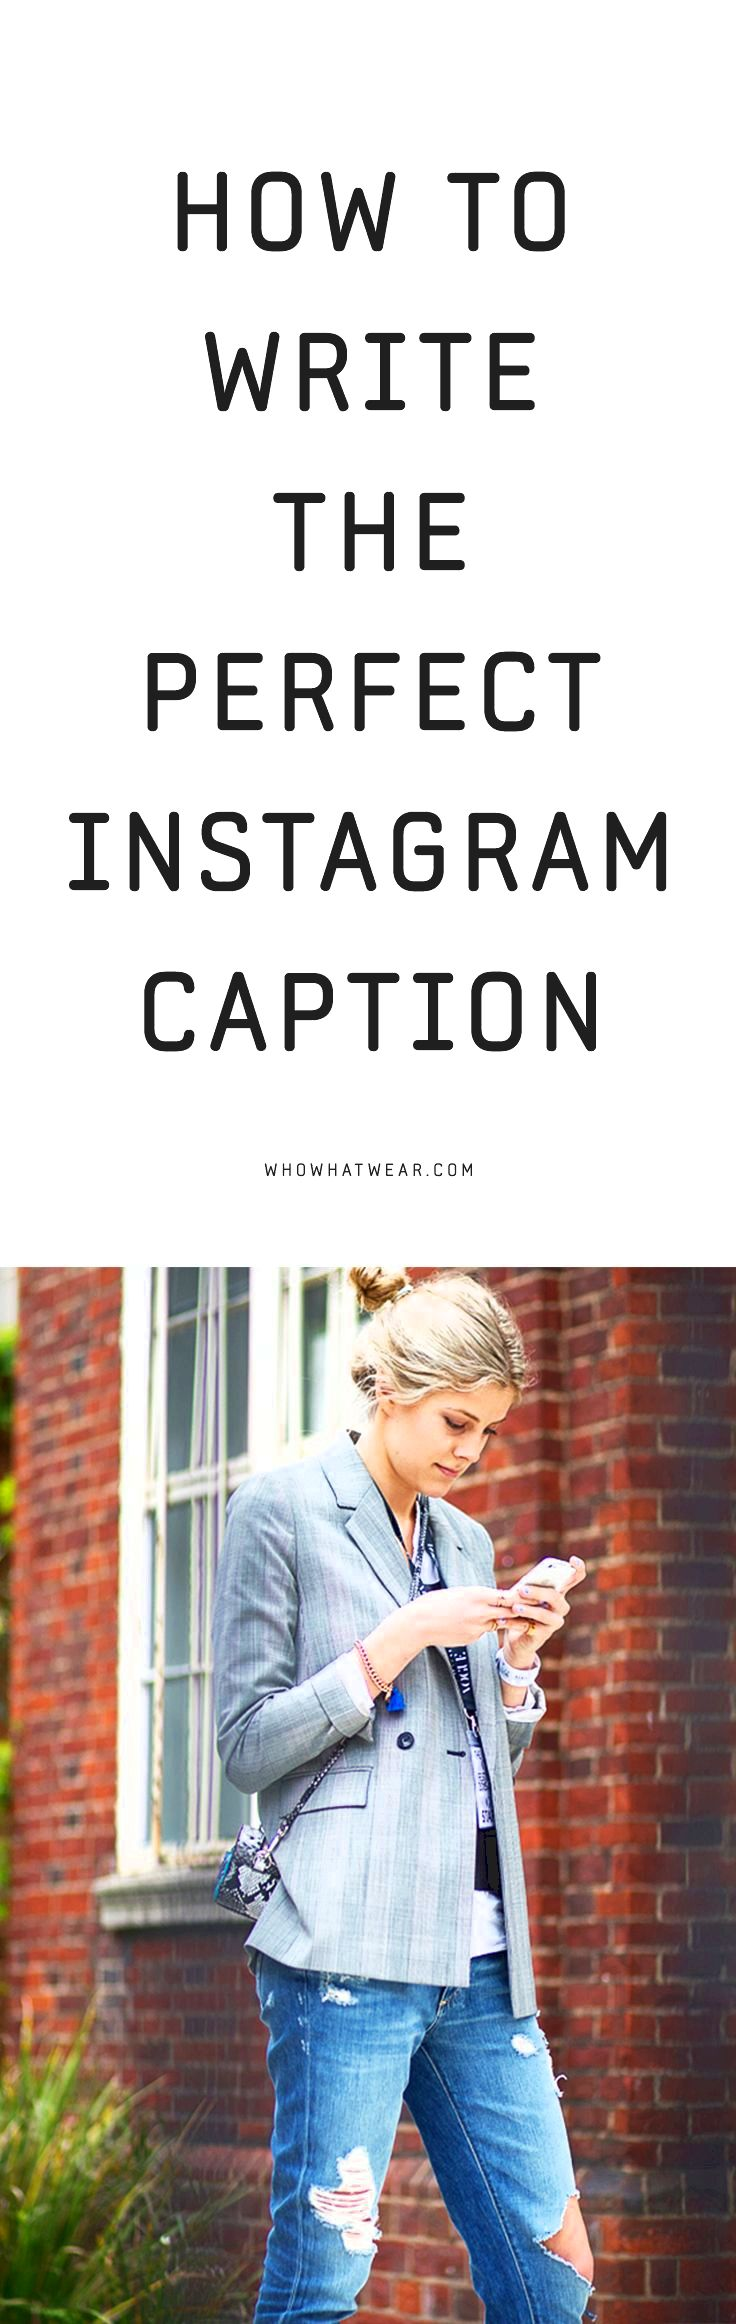 Four steps to writing the right instagram caption be relevant           Use alliteration